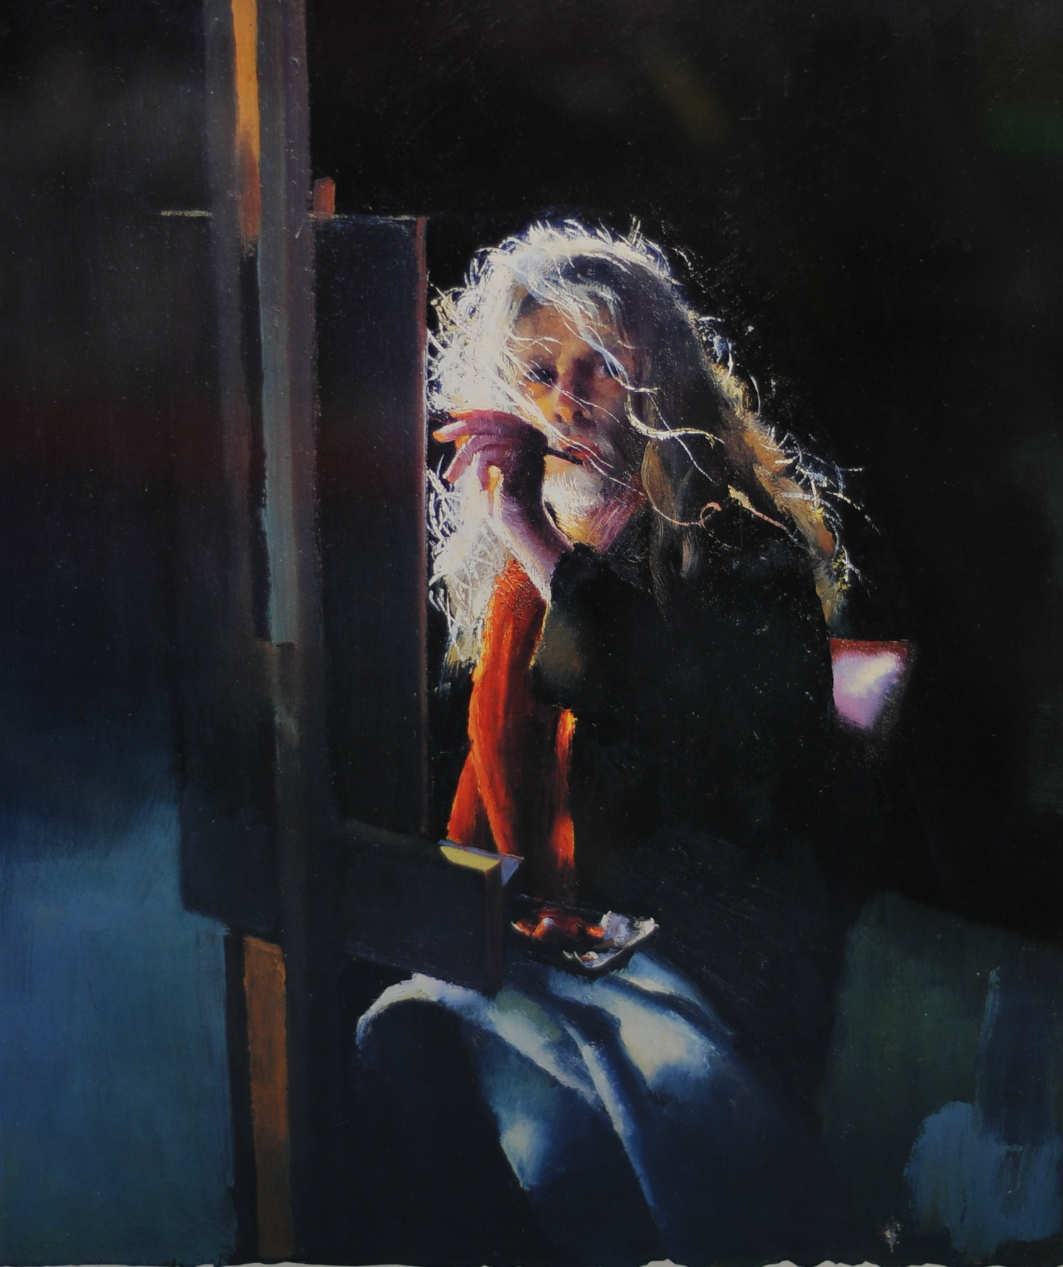 Lot 058 - Robert Lenkiewicz (1941-2002), signed print 'Painter in the wind 3:50am', 42cm x 35cm, framed and